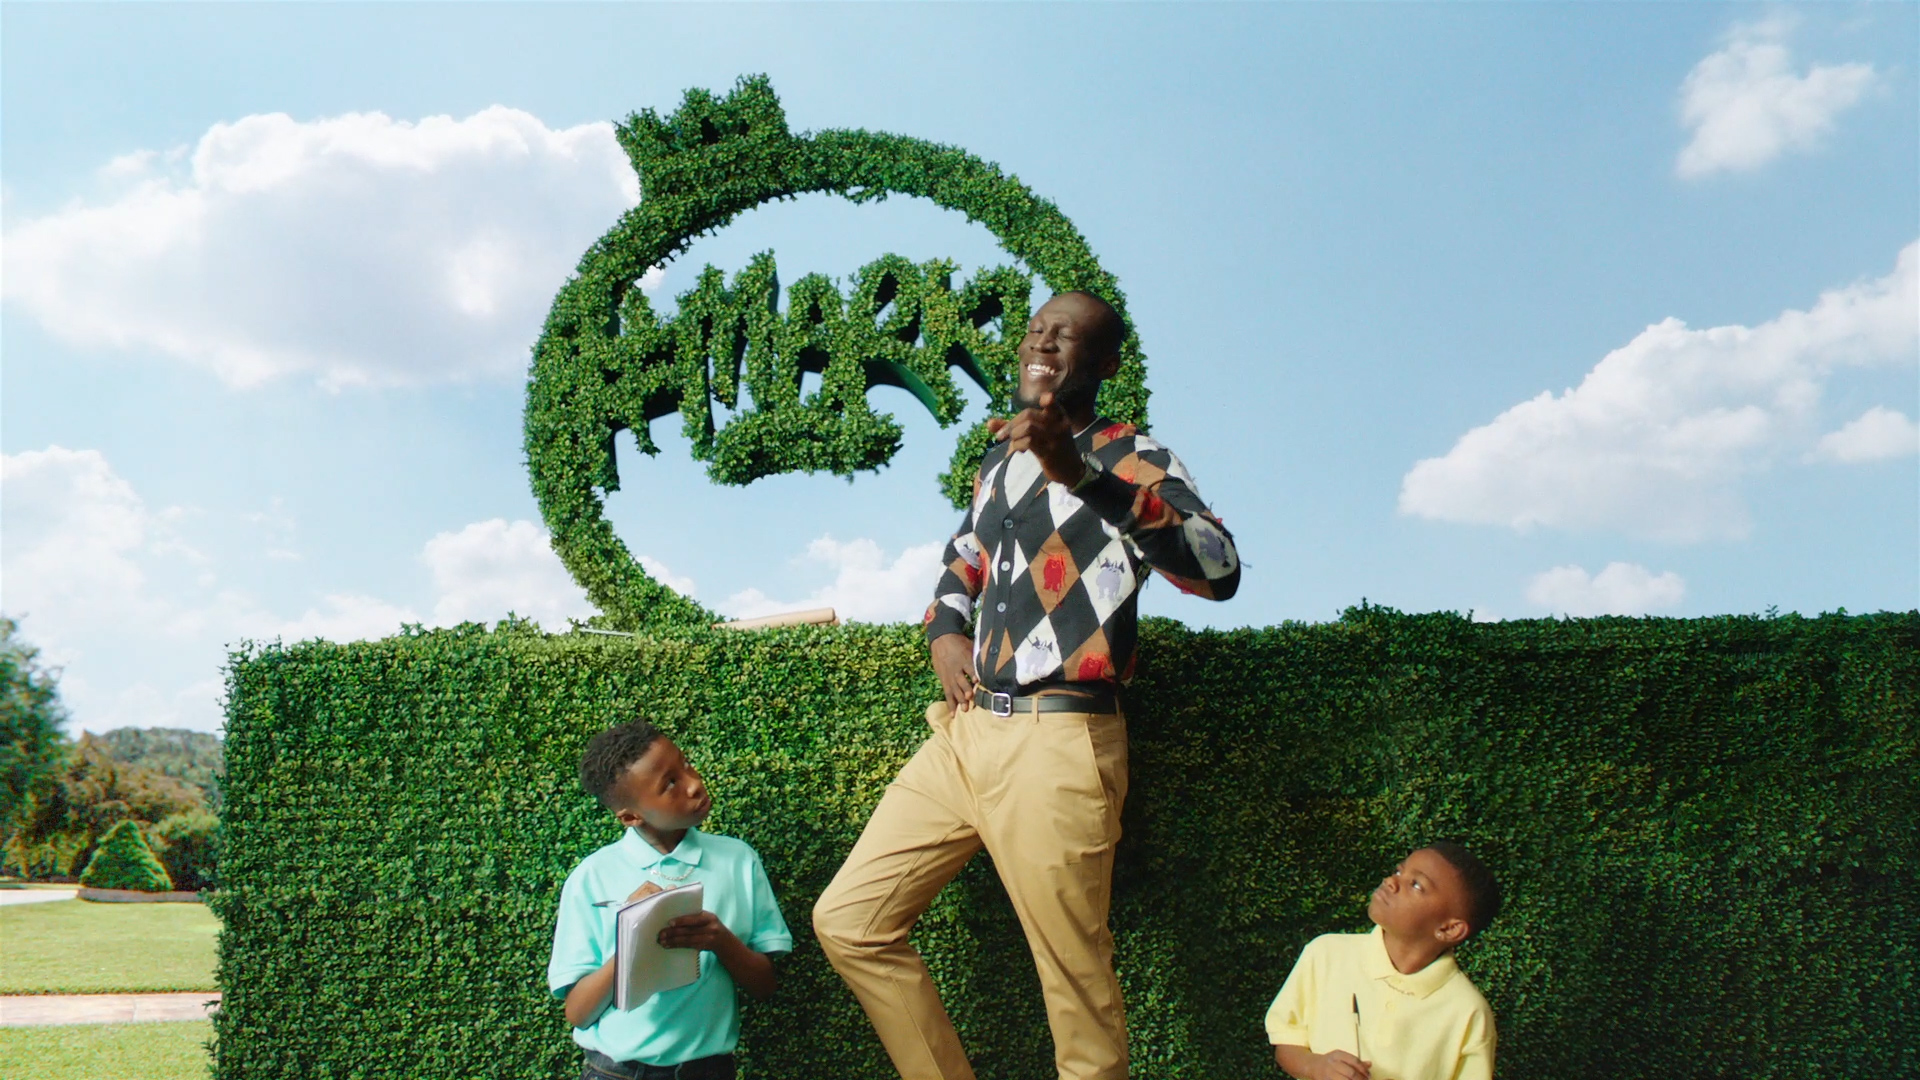 Stormzy and Henry Scholfied Collaborate Again for Ballsy Video 'Sounds of the Skeng'